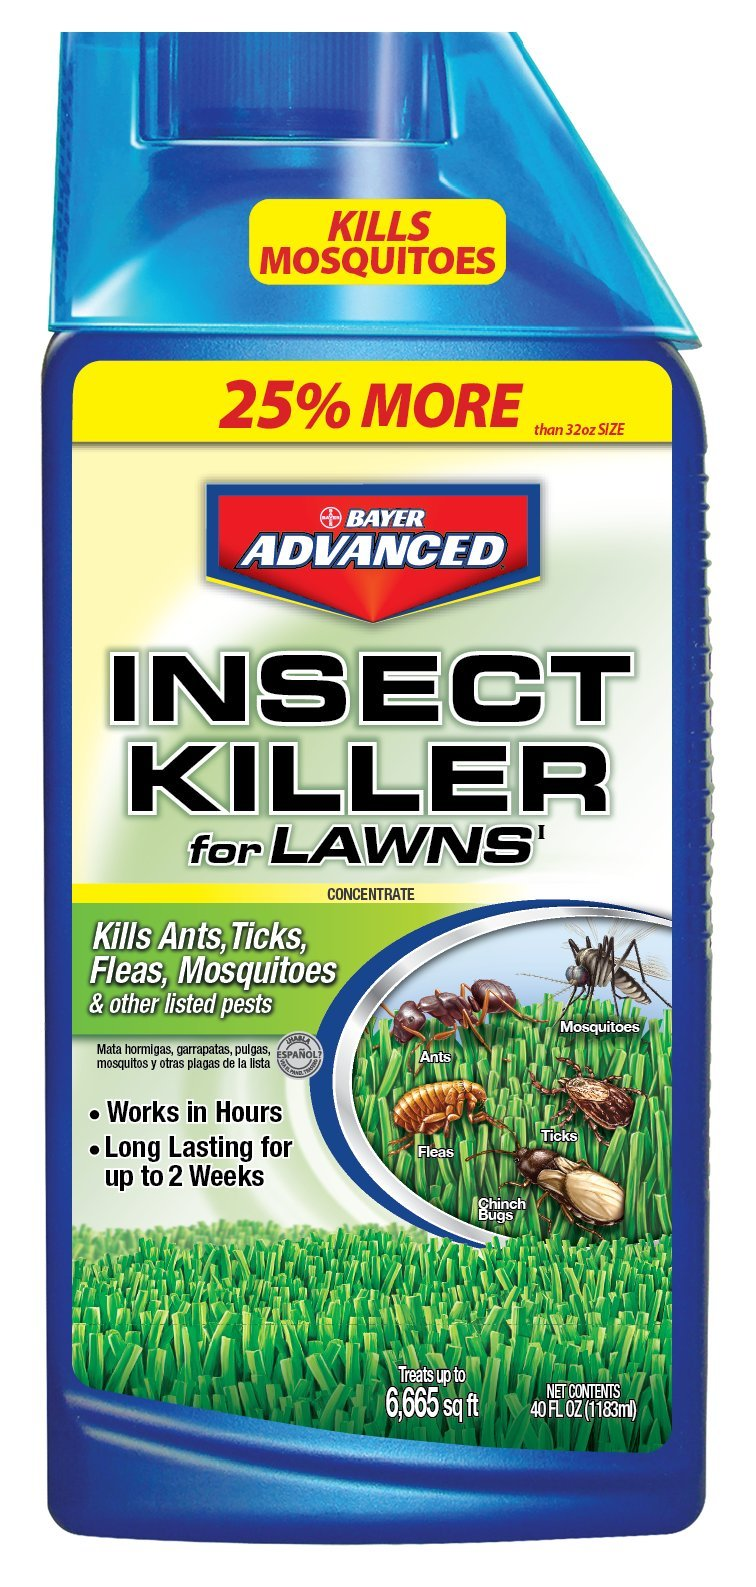 Bayer Advanced 100532526 Bayer Lawn Insect Killer Concentrate, 40 oz, White by Bayer Advanced (Image #1)